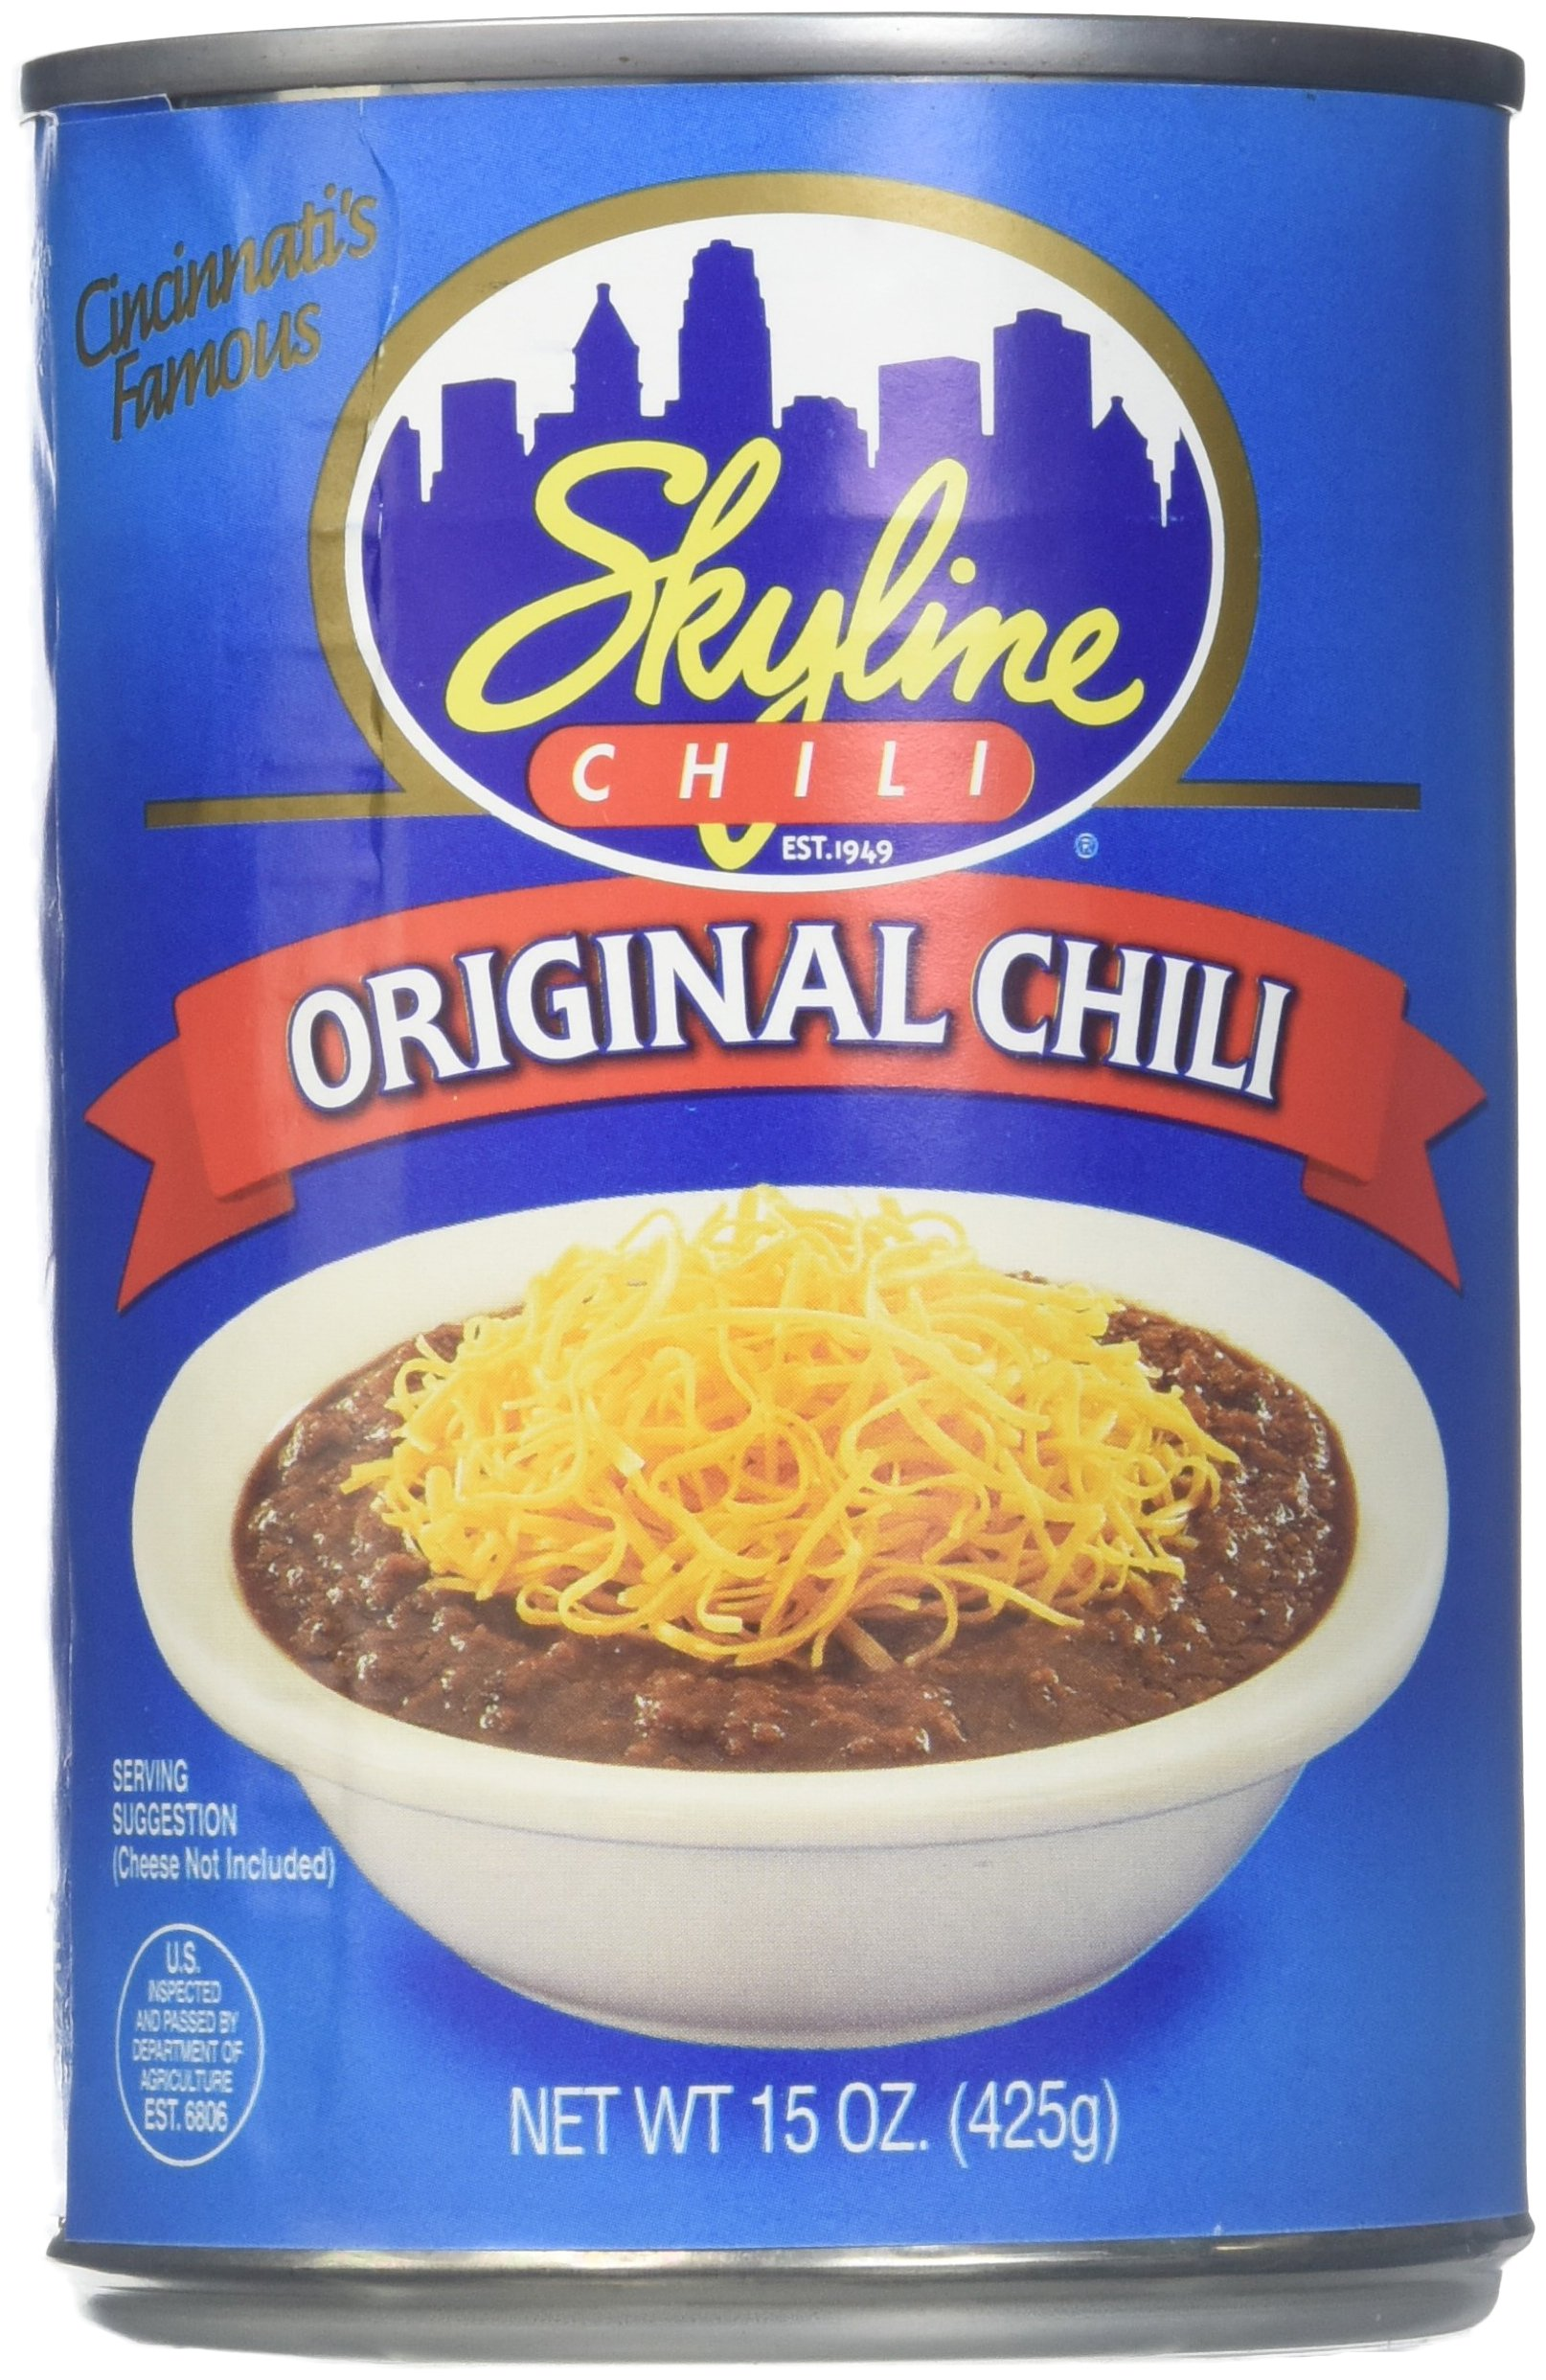 Skyline Chili 4 Cans/15oz